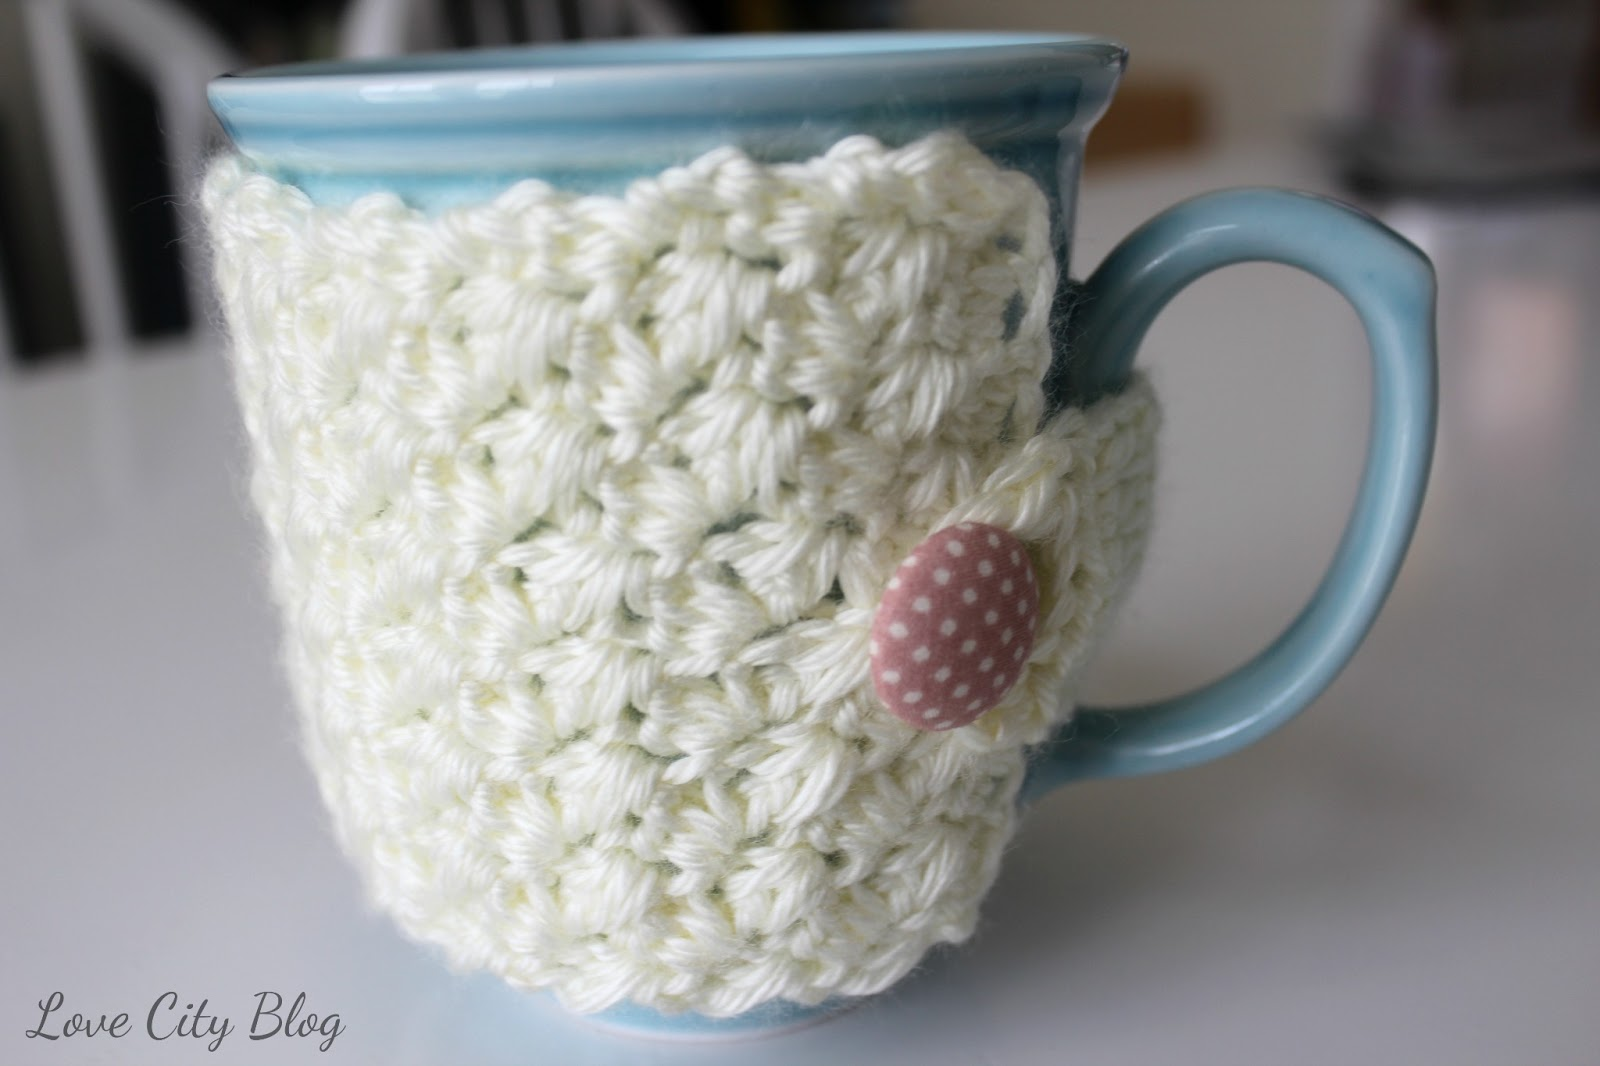 found a great crochet cozy pattern from Lisas blog, Bubblegirl .